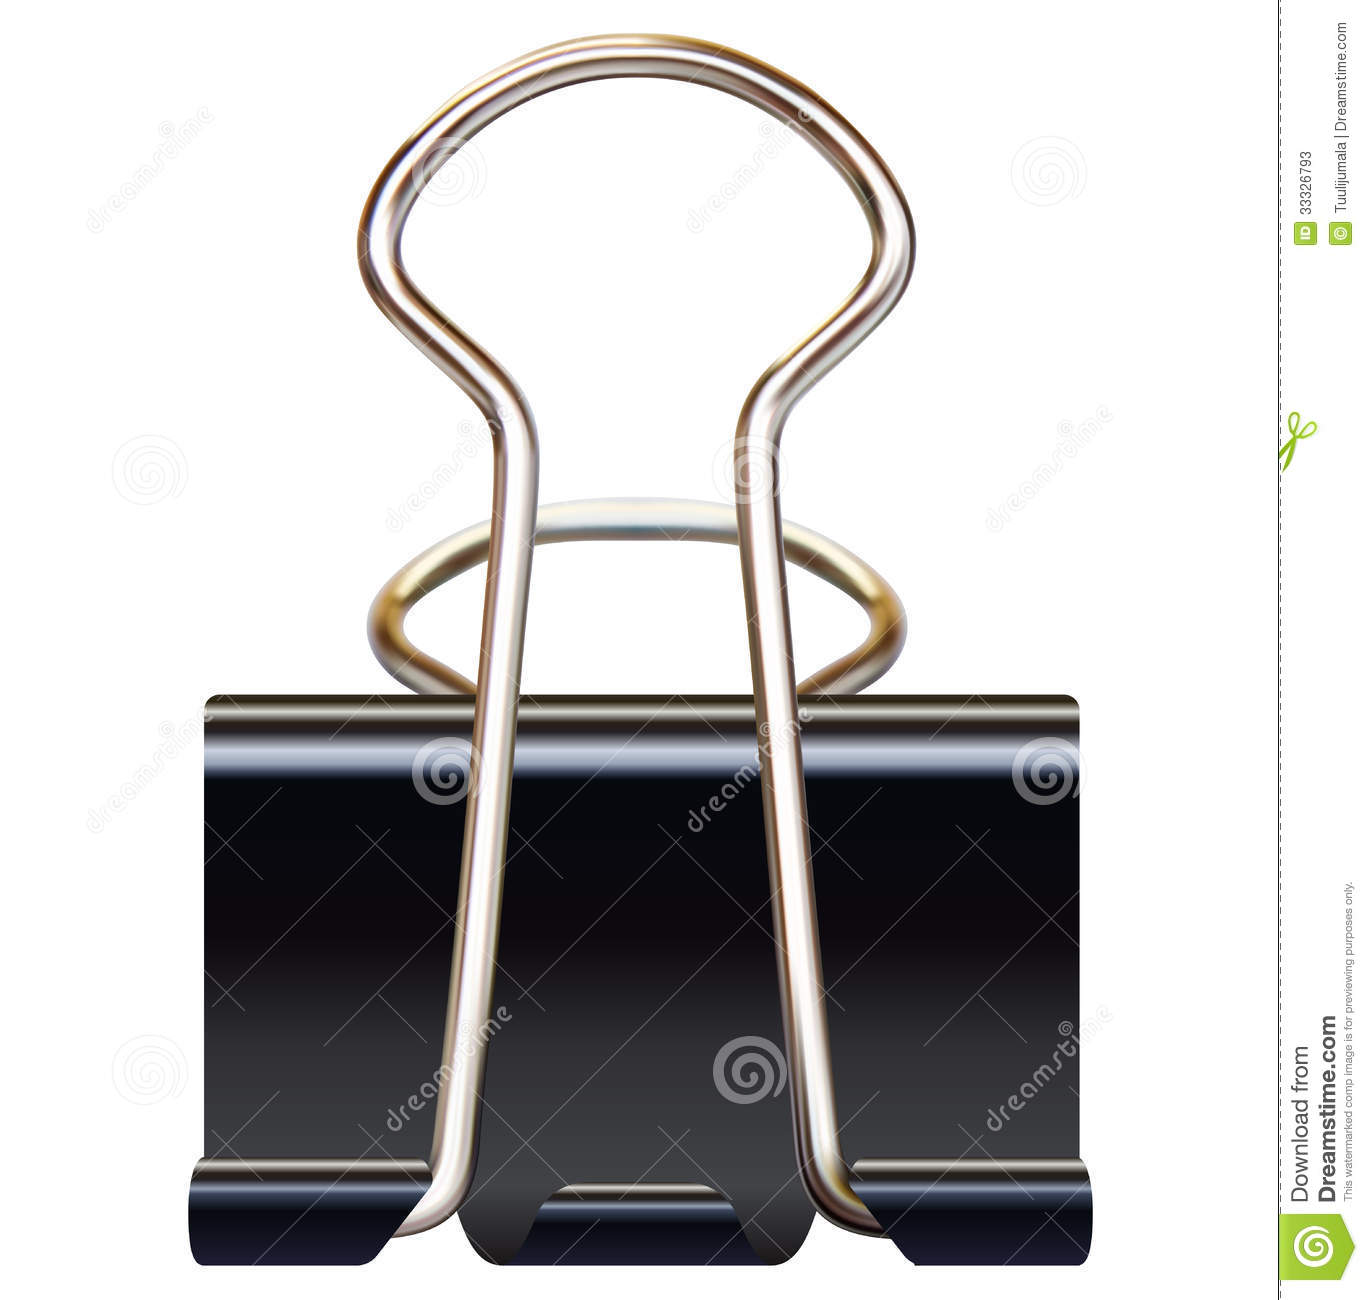 Black paper binder clip on white background realistic illustration.